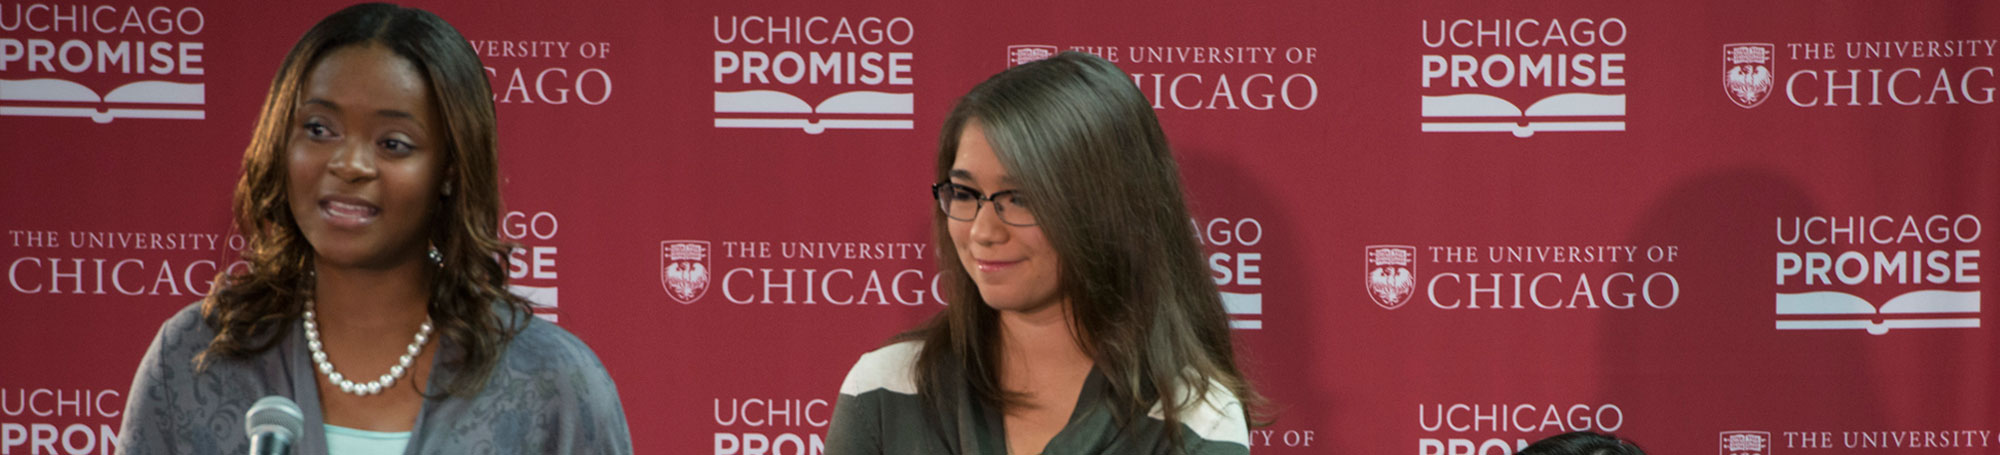 UChicago Promise students